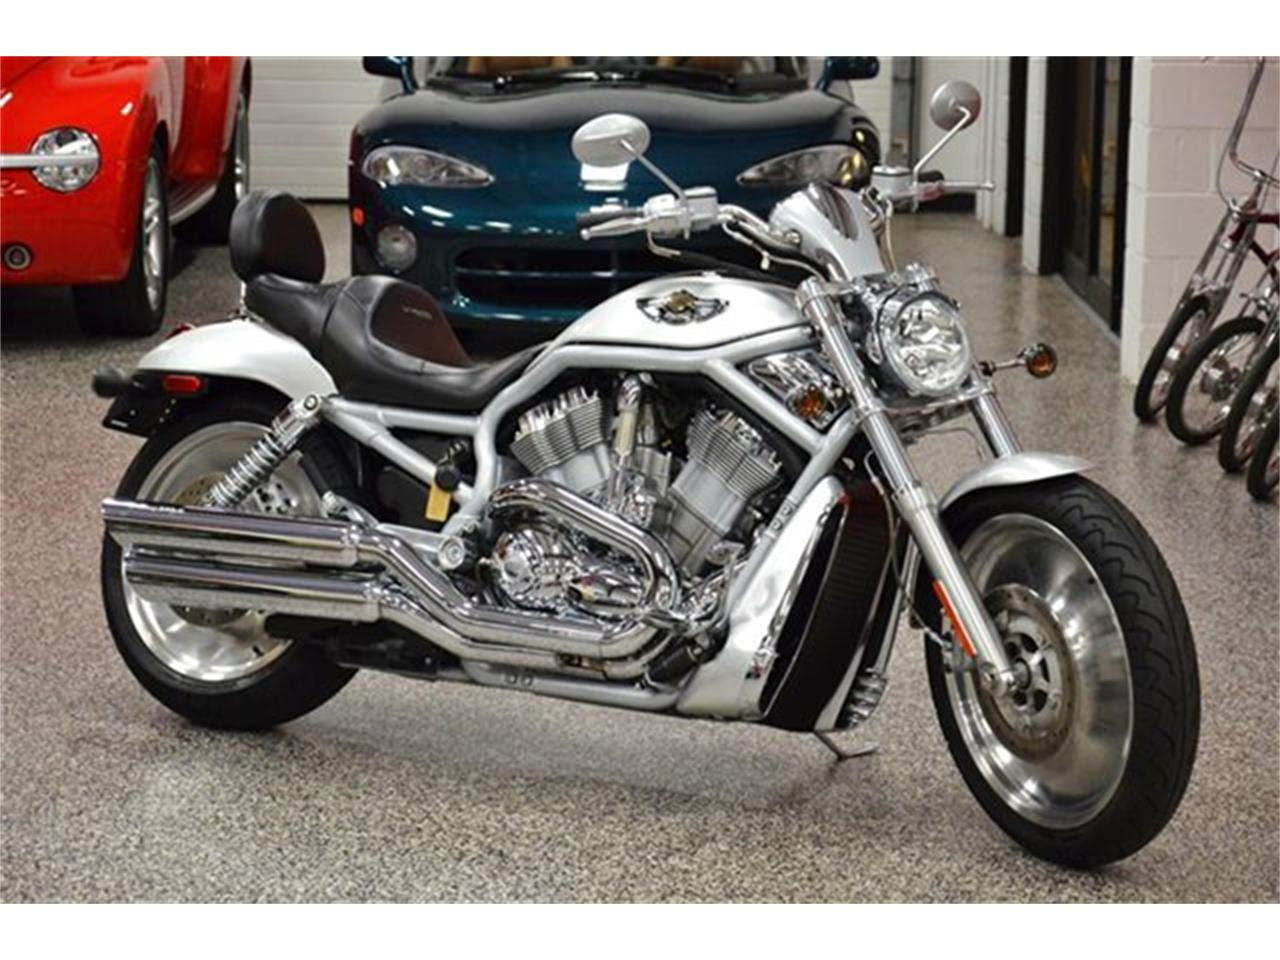 2003 Harley-Davidson VRSC for sale in Plainfield, IL – photo 19